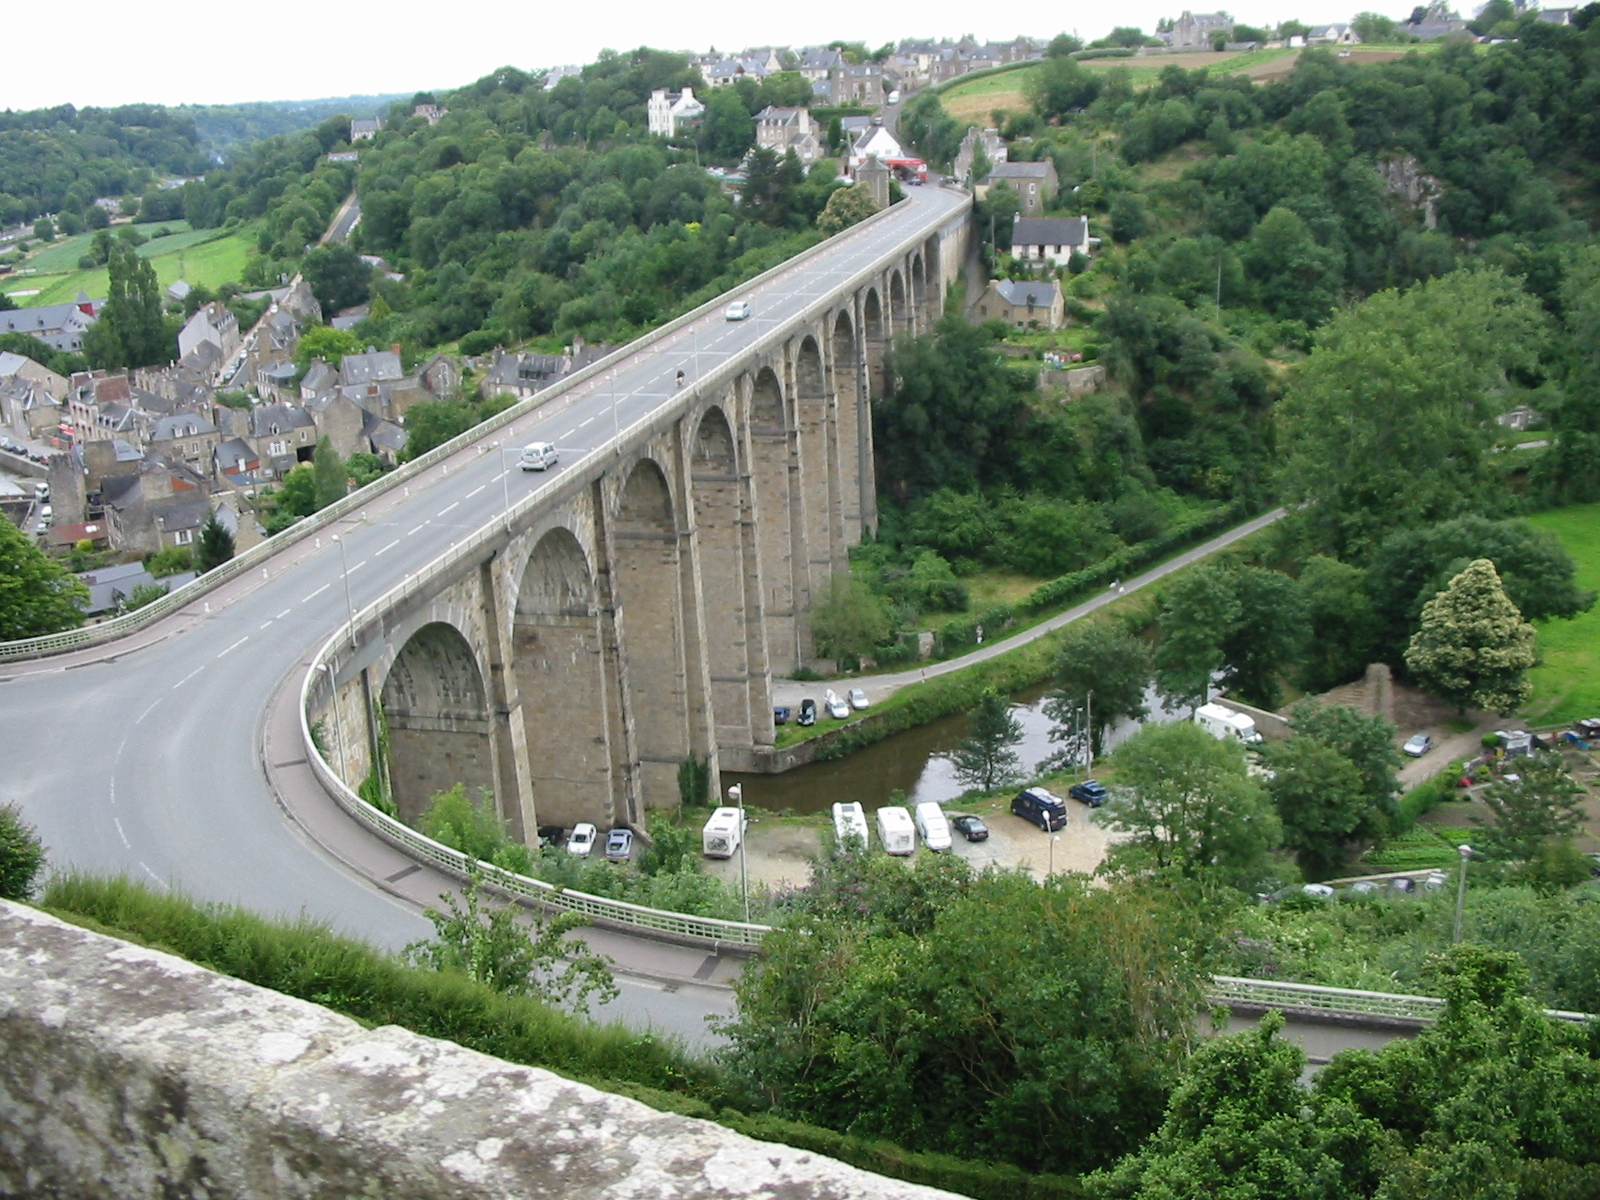 Dinan France  city photos gallery : Dinan France , viaduc over Rance river Wikimedia Commons